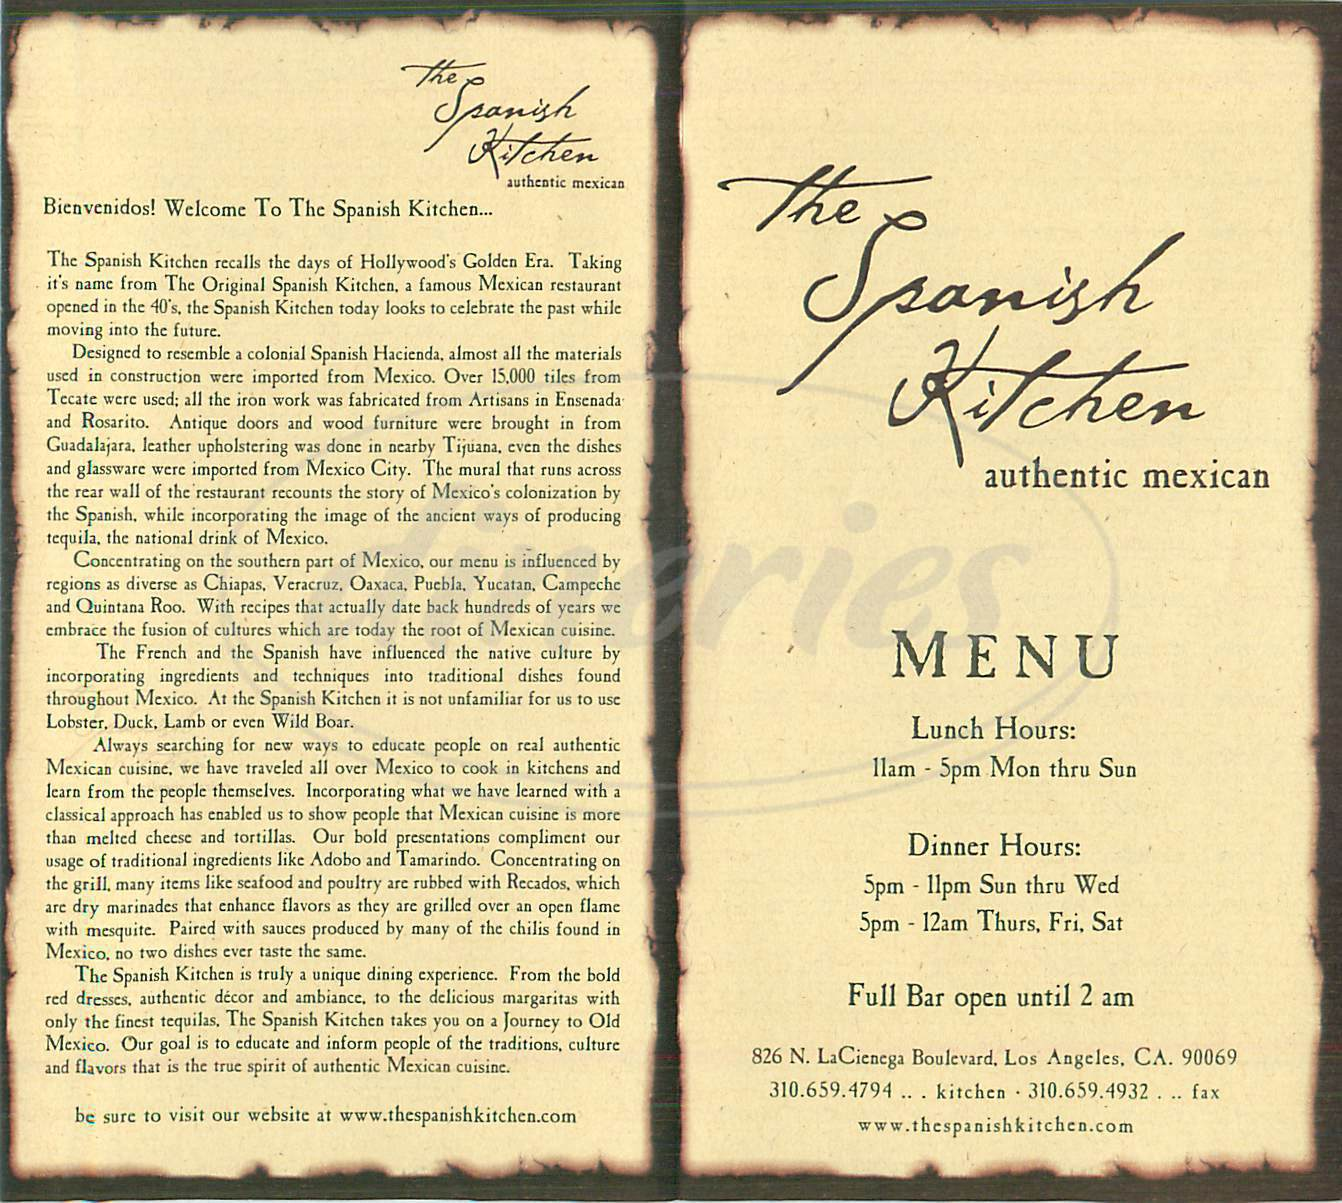 menu for The Spanish Kitchen